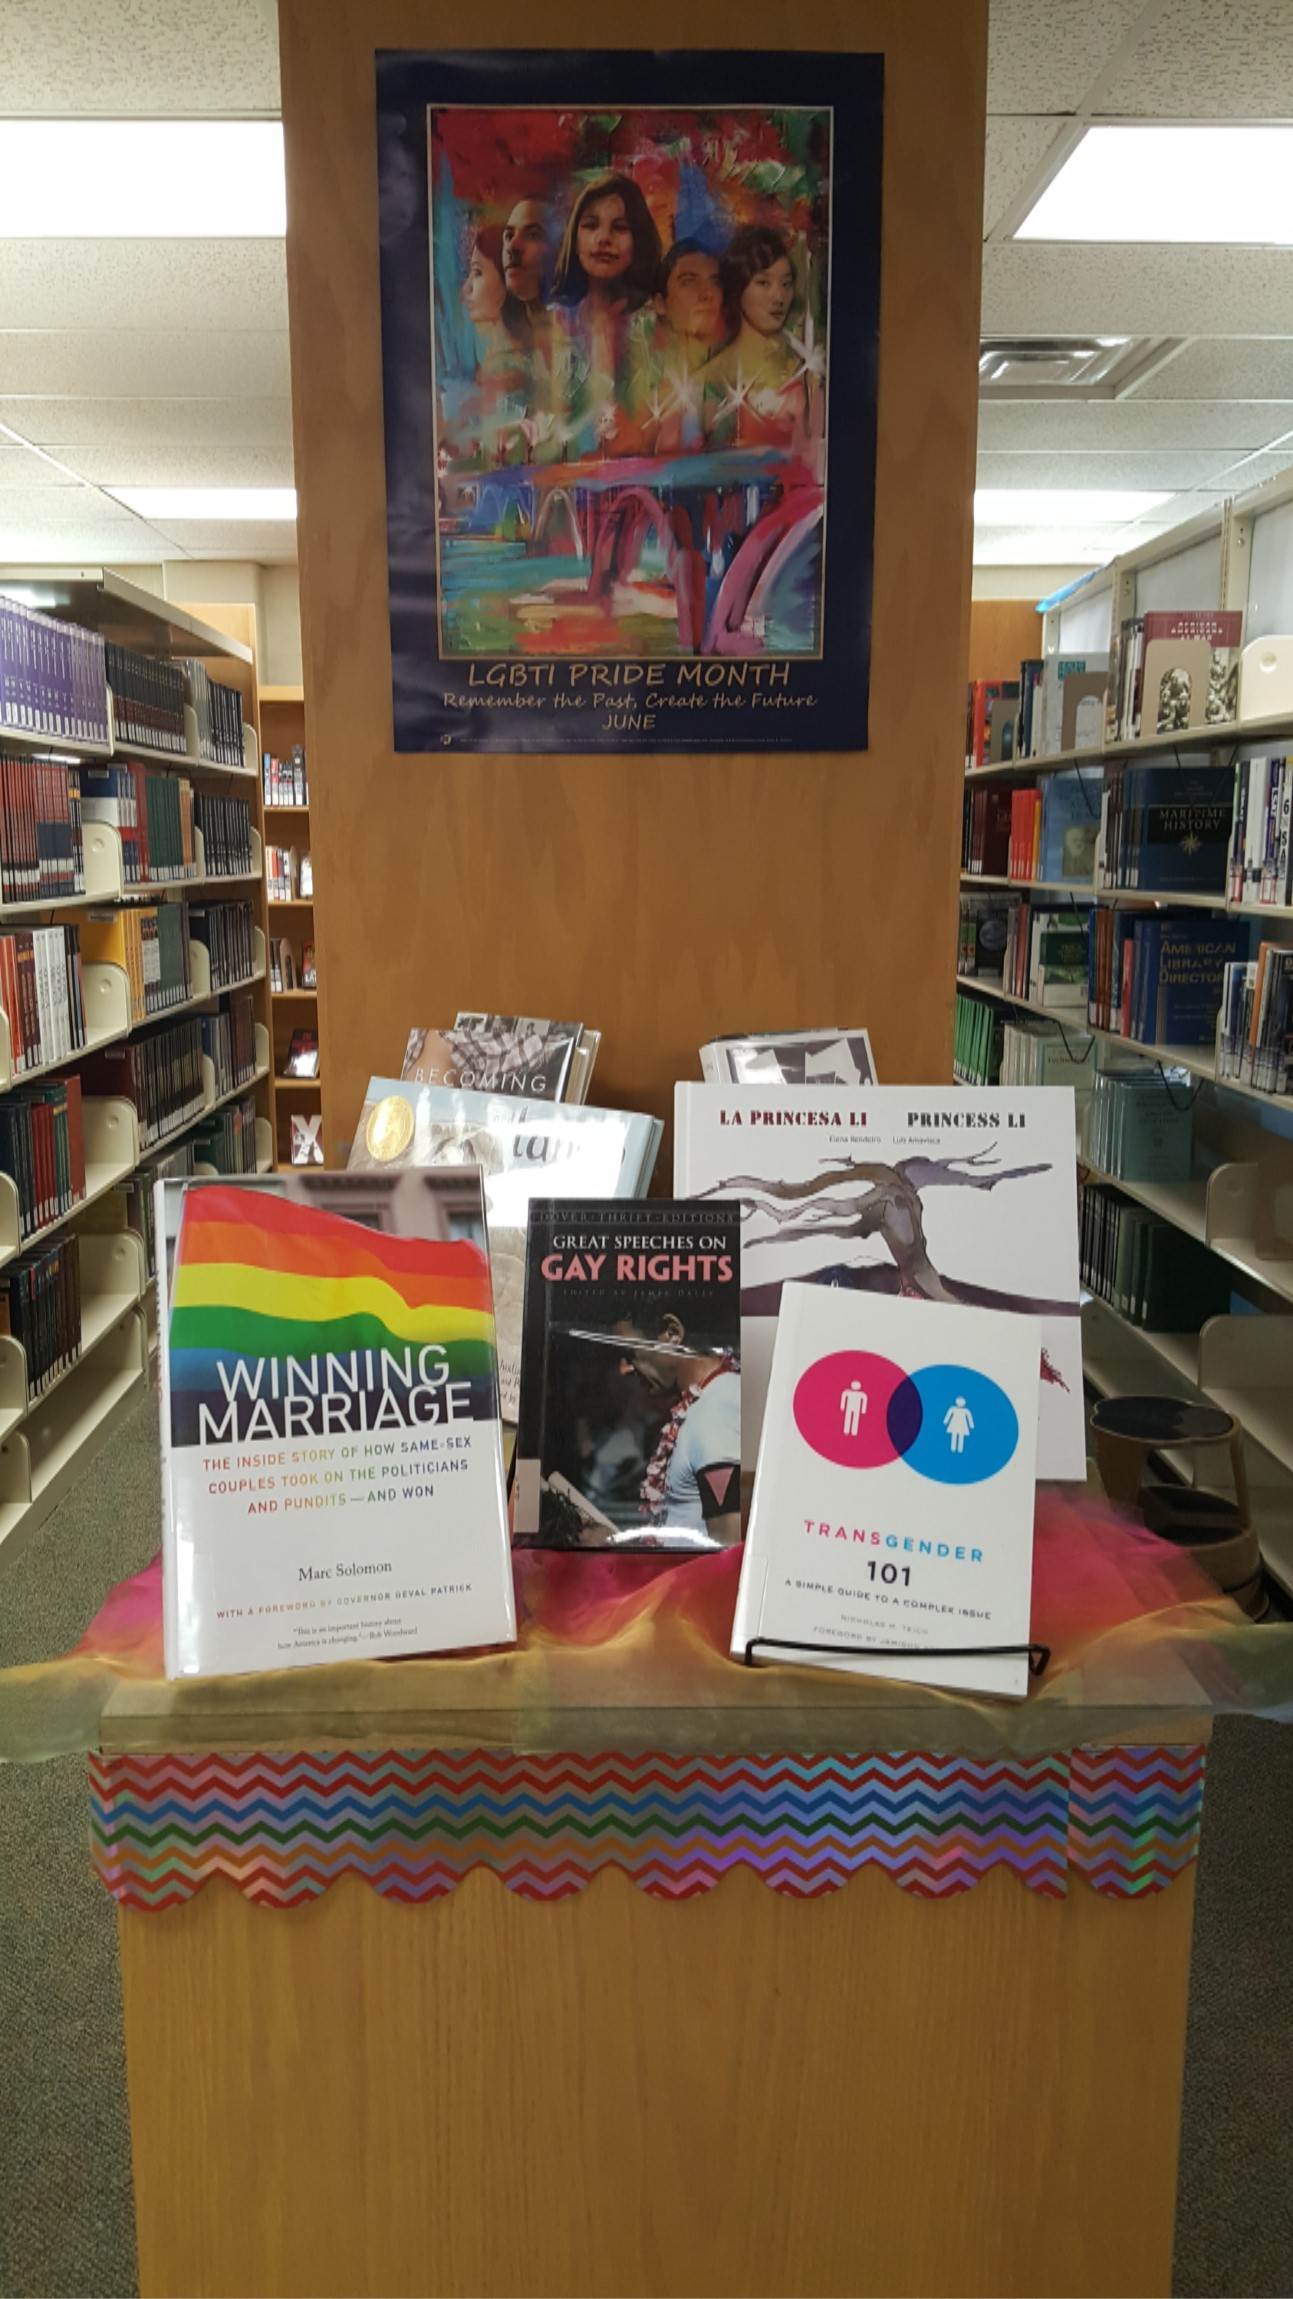 Image:  Library Display, LGBT Awareness Month, June 2018